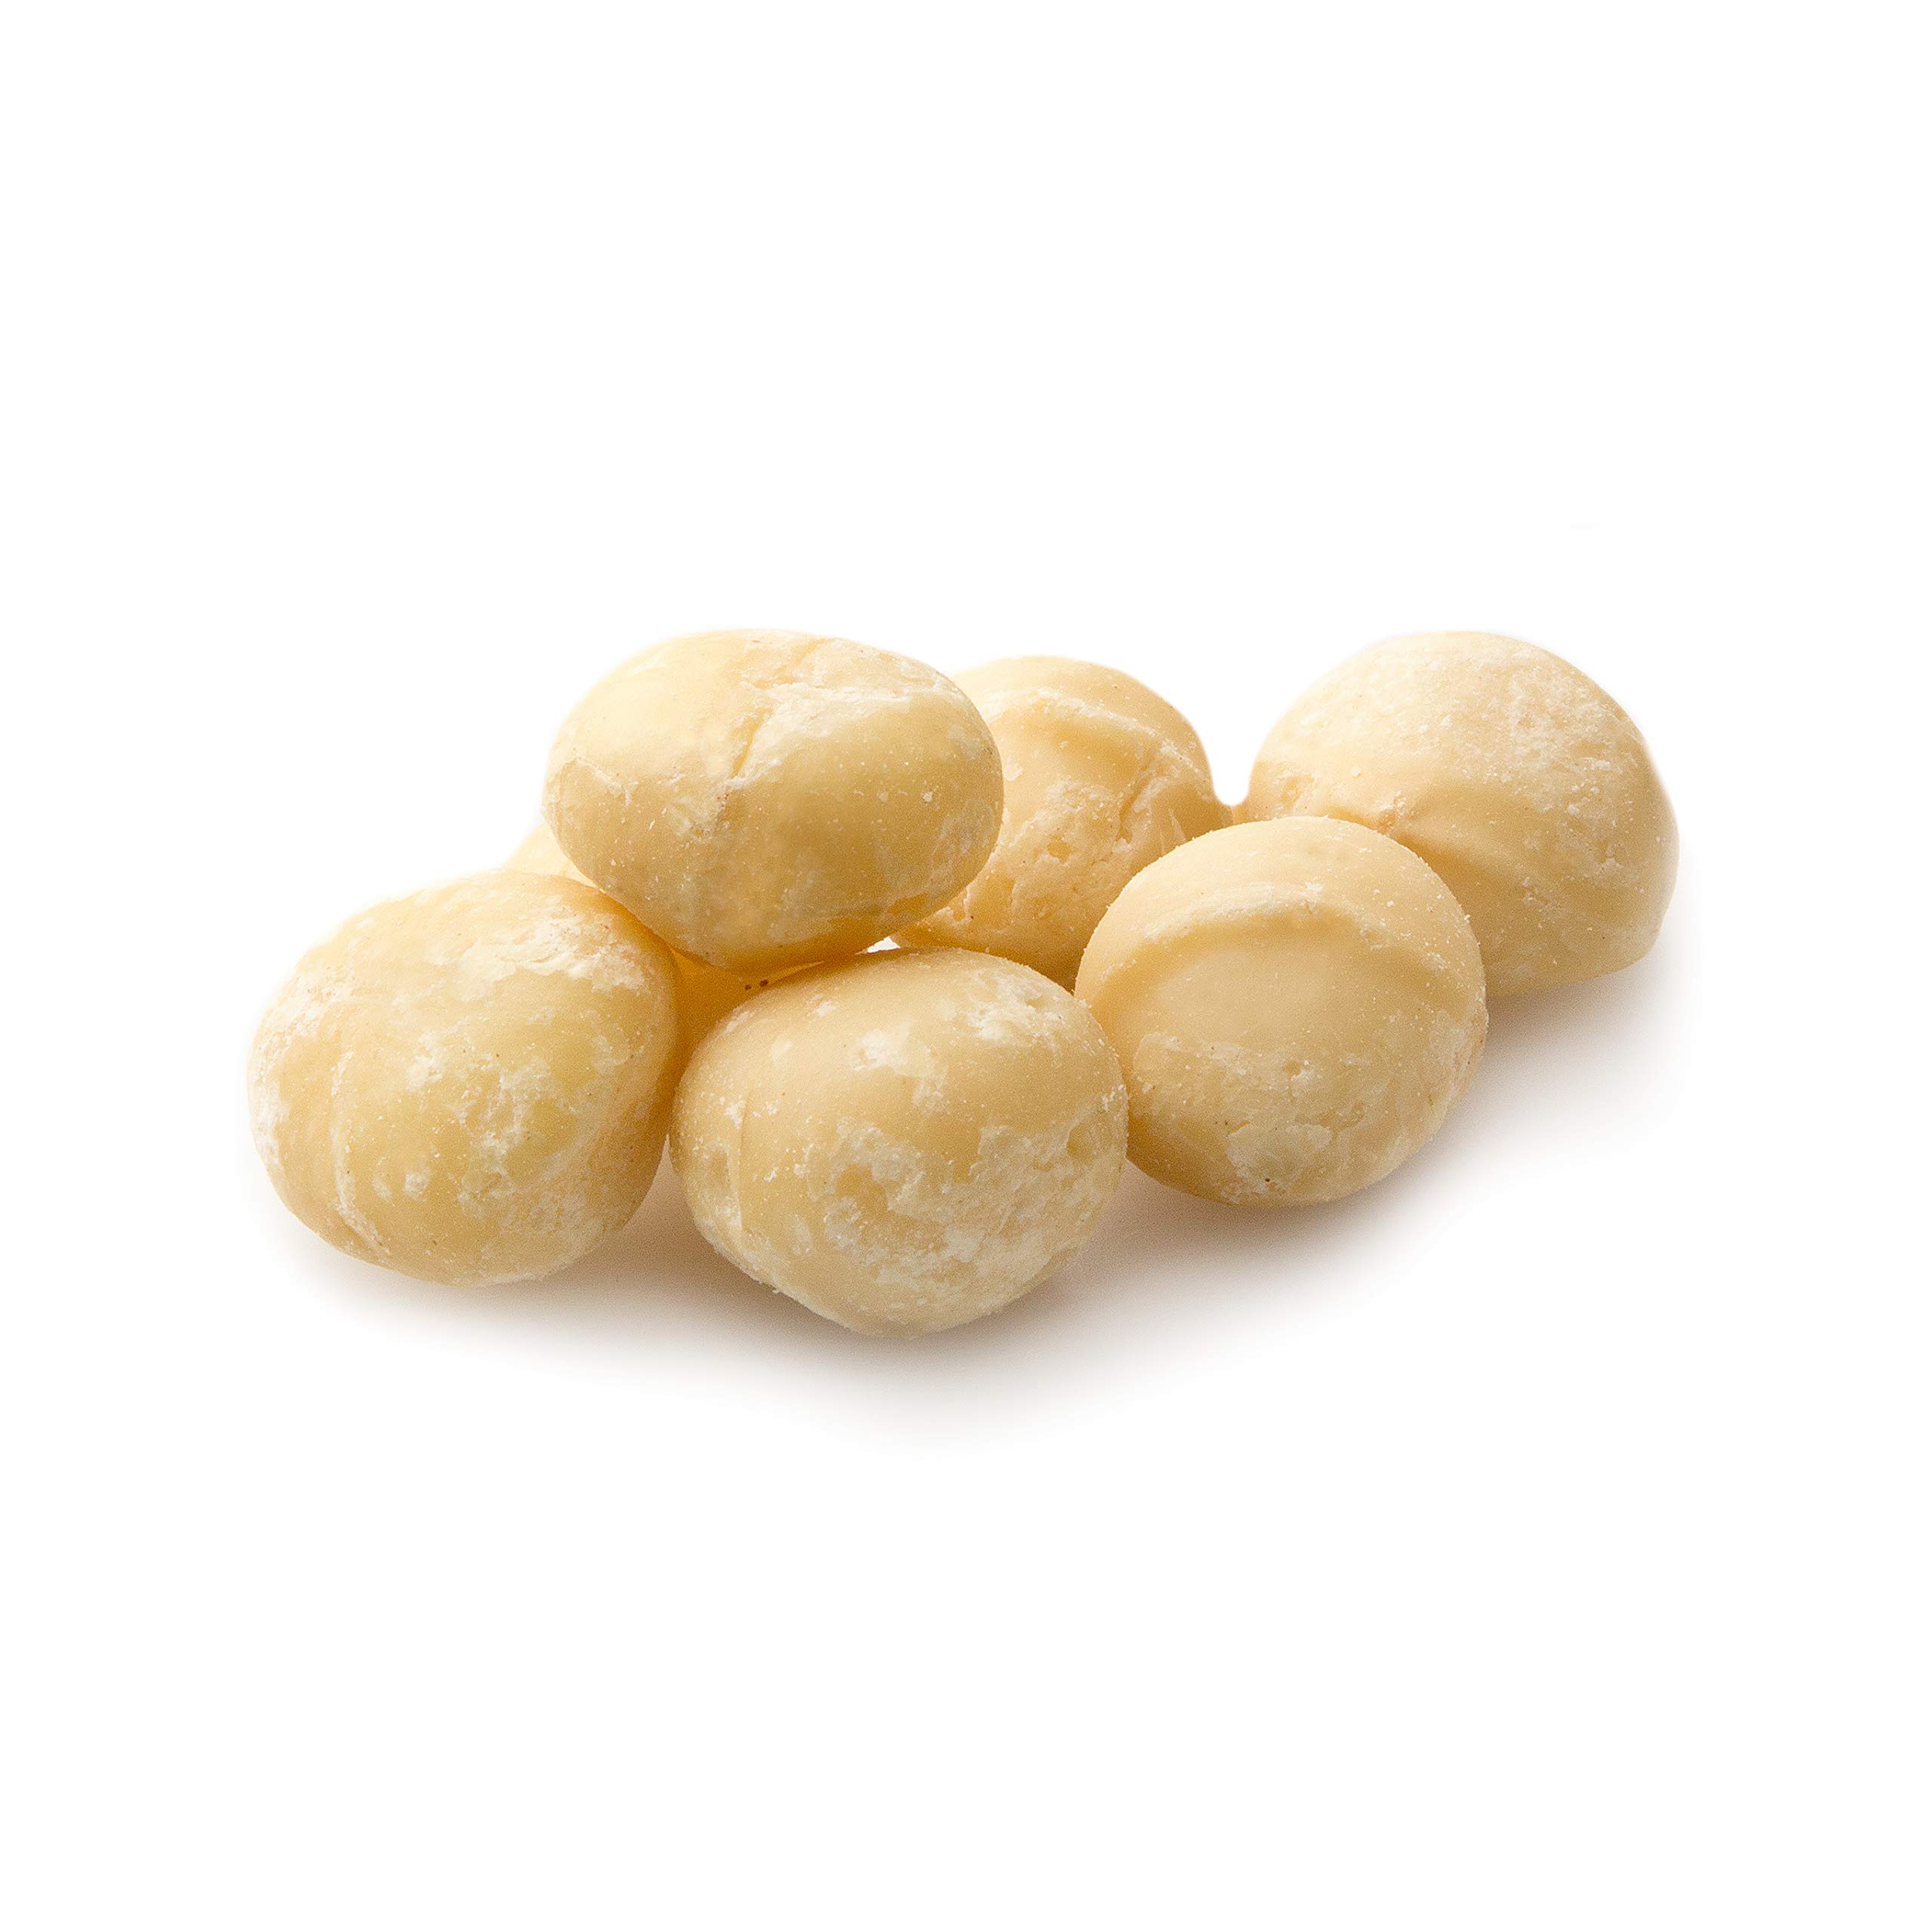 Macadamia Nuts Raw Unsalted - Large Hawaiian Raw Macadamias, Heart Healthy Snack 1 LB BAG - Oh! Nuts by oh! Nuts (Image #3)